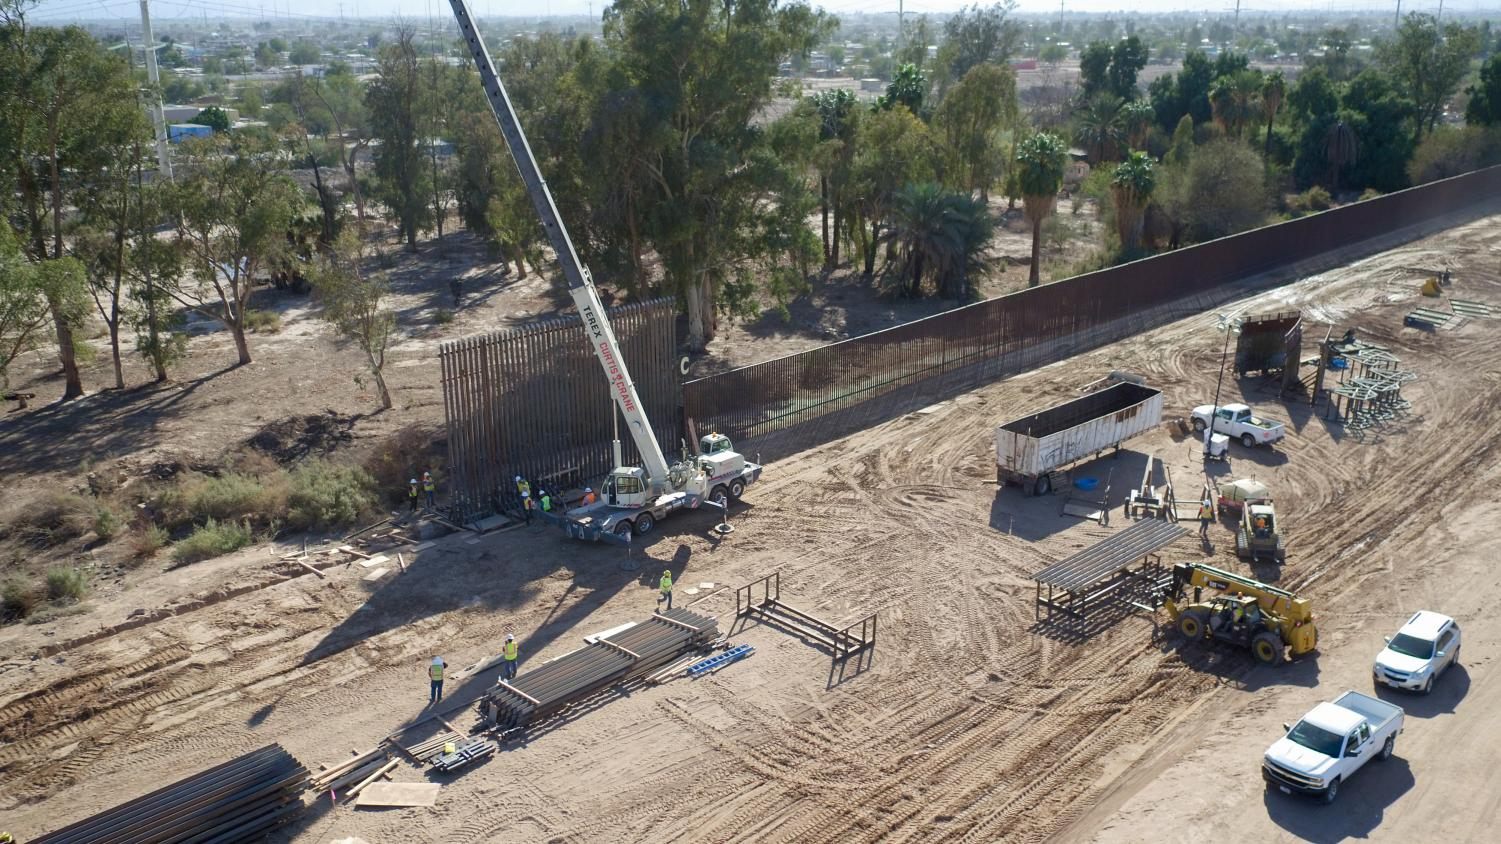 Construction of the wall on the southern border has begun. President Trump used his power to declare a national emergency to get the funds for the wall, though opponents argue the constitutionality of the emergency declaration.